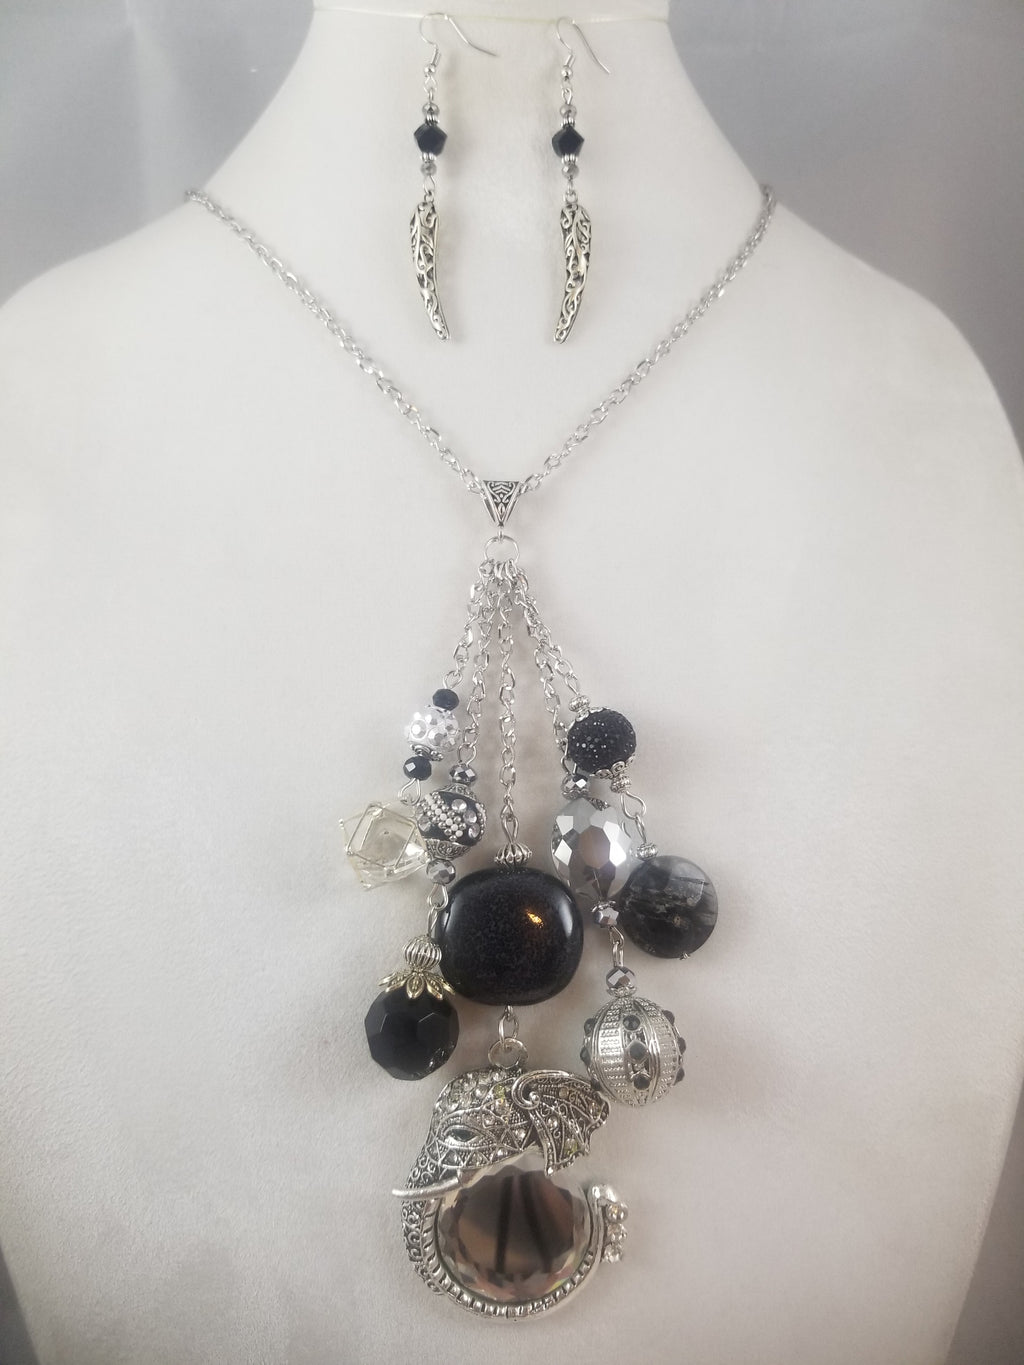 Zambica Necklace with Earrings